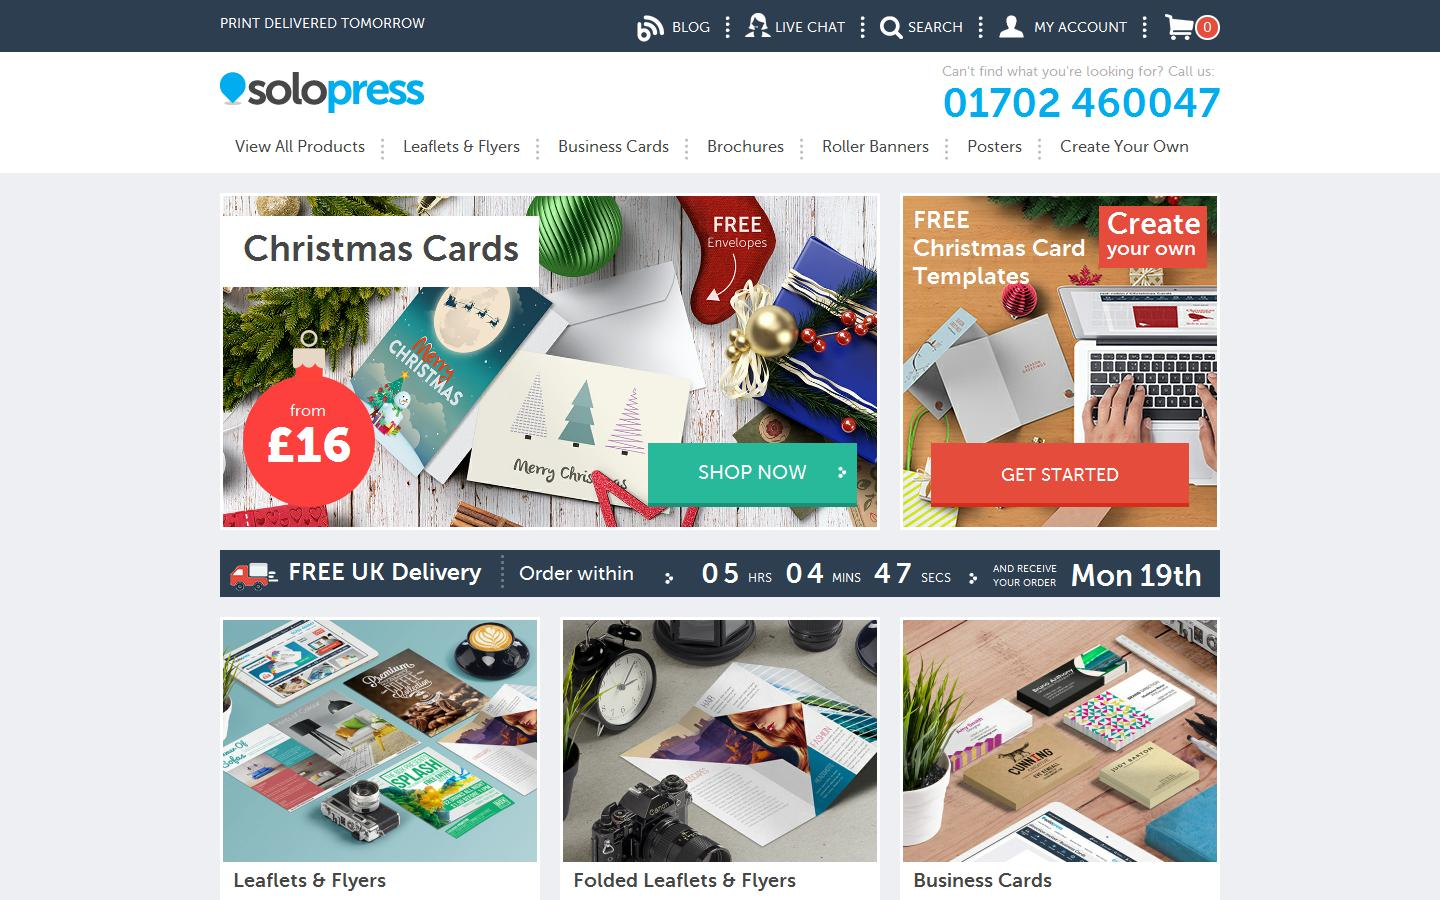 Solopress essex ss2 5qf solopress solopress provide 24 hour turnaround premium quality printing on banners brochures business cards compliment slips flyers folders reheart Images